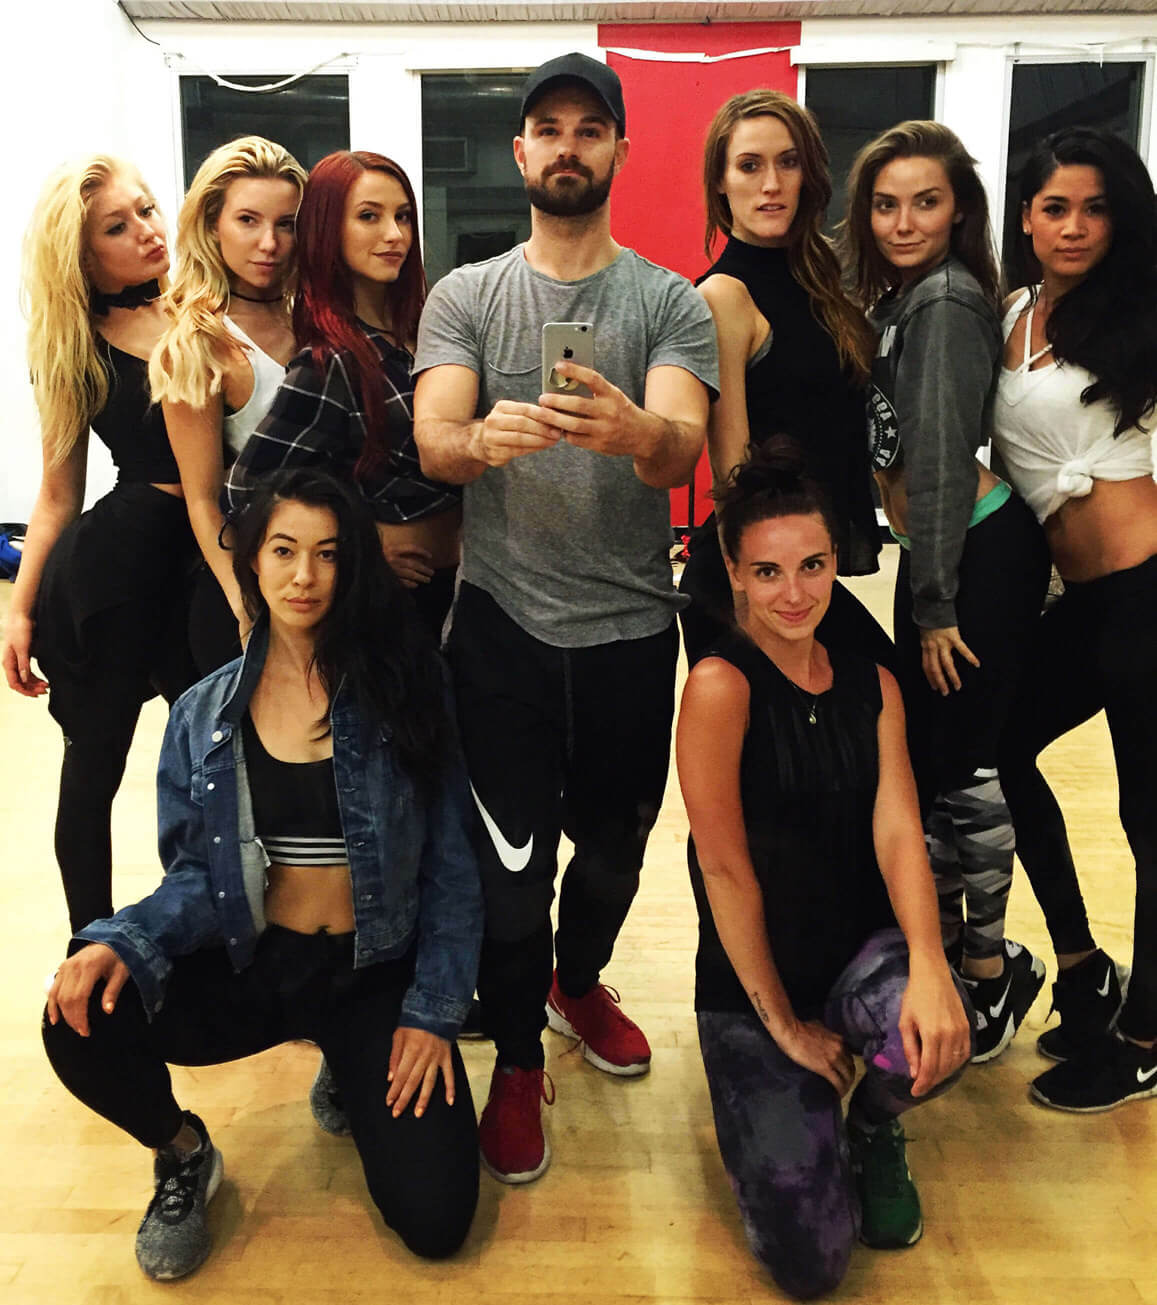 live event performers los angeles dance group asher entertainment 114